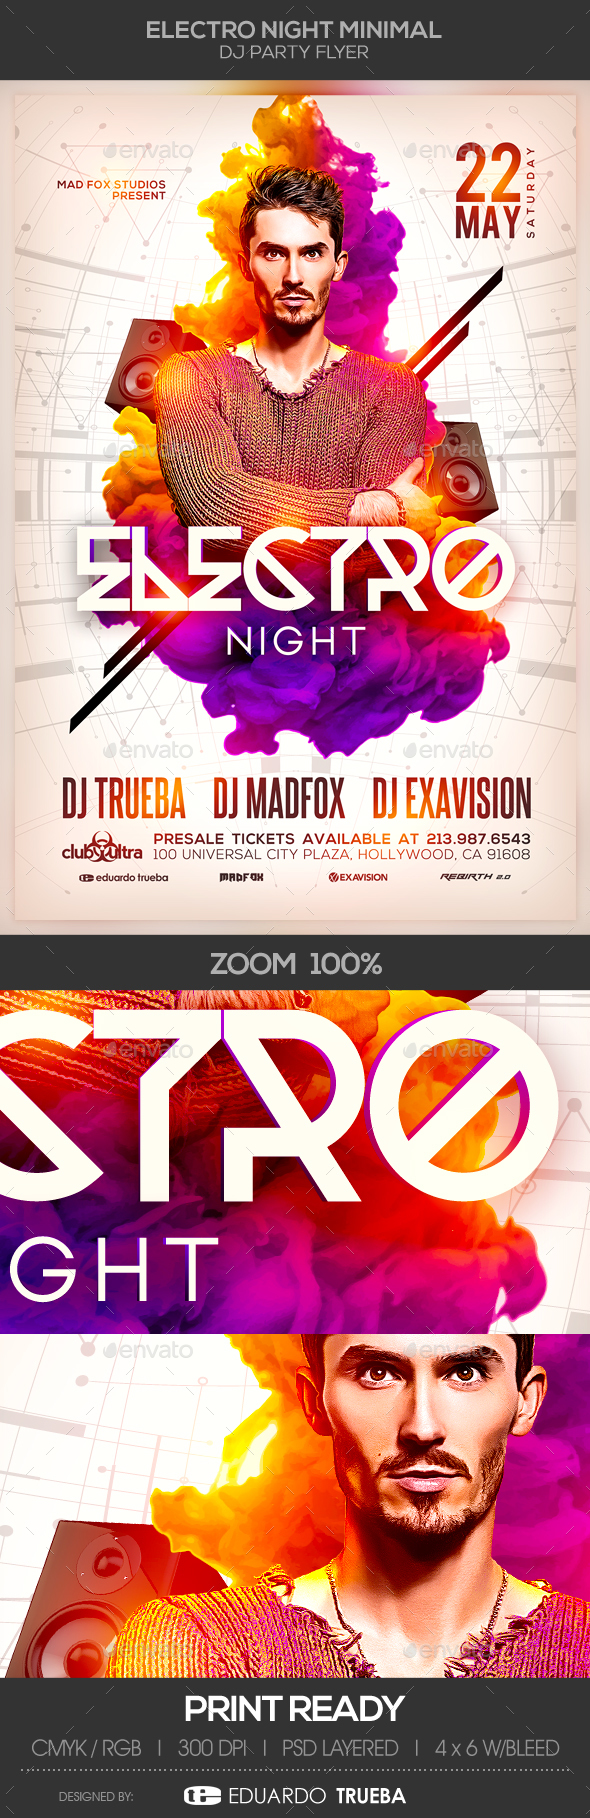 Electro Night EDM Minimal Dj Party Flyer - Clubs & Parties Events